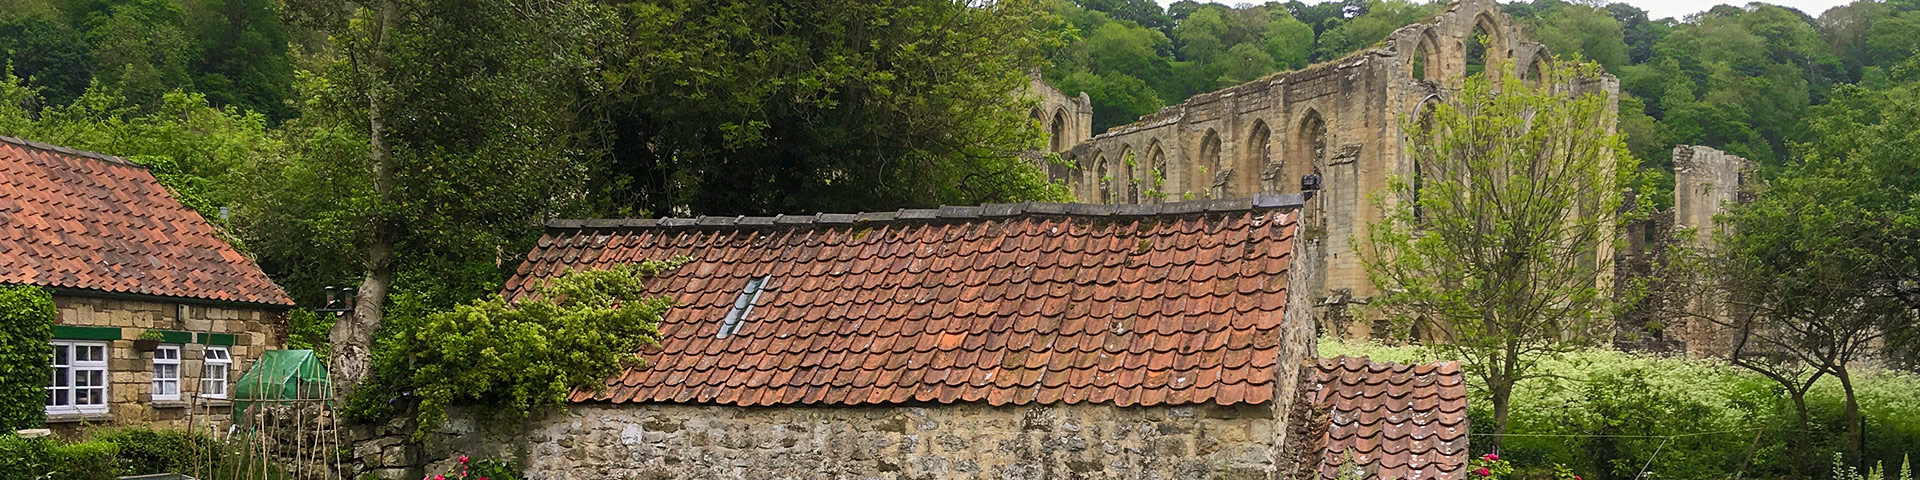 Panoramic views of the Helmsley to Rievaulx Abbey walk in North York Moors, England